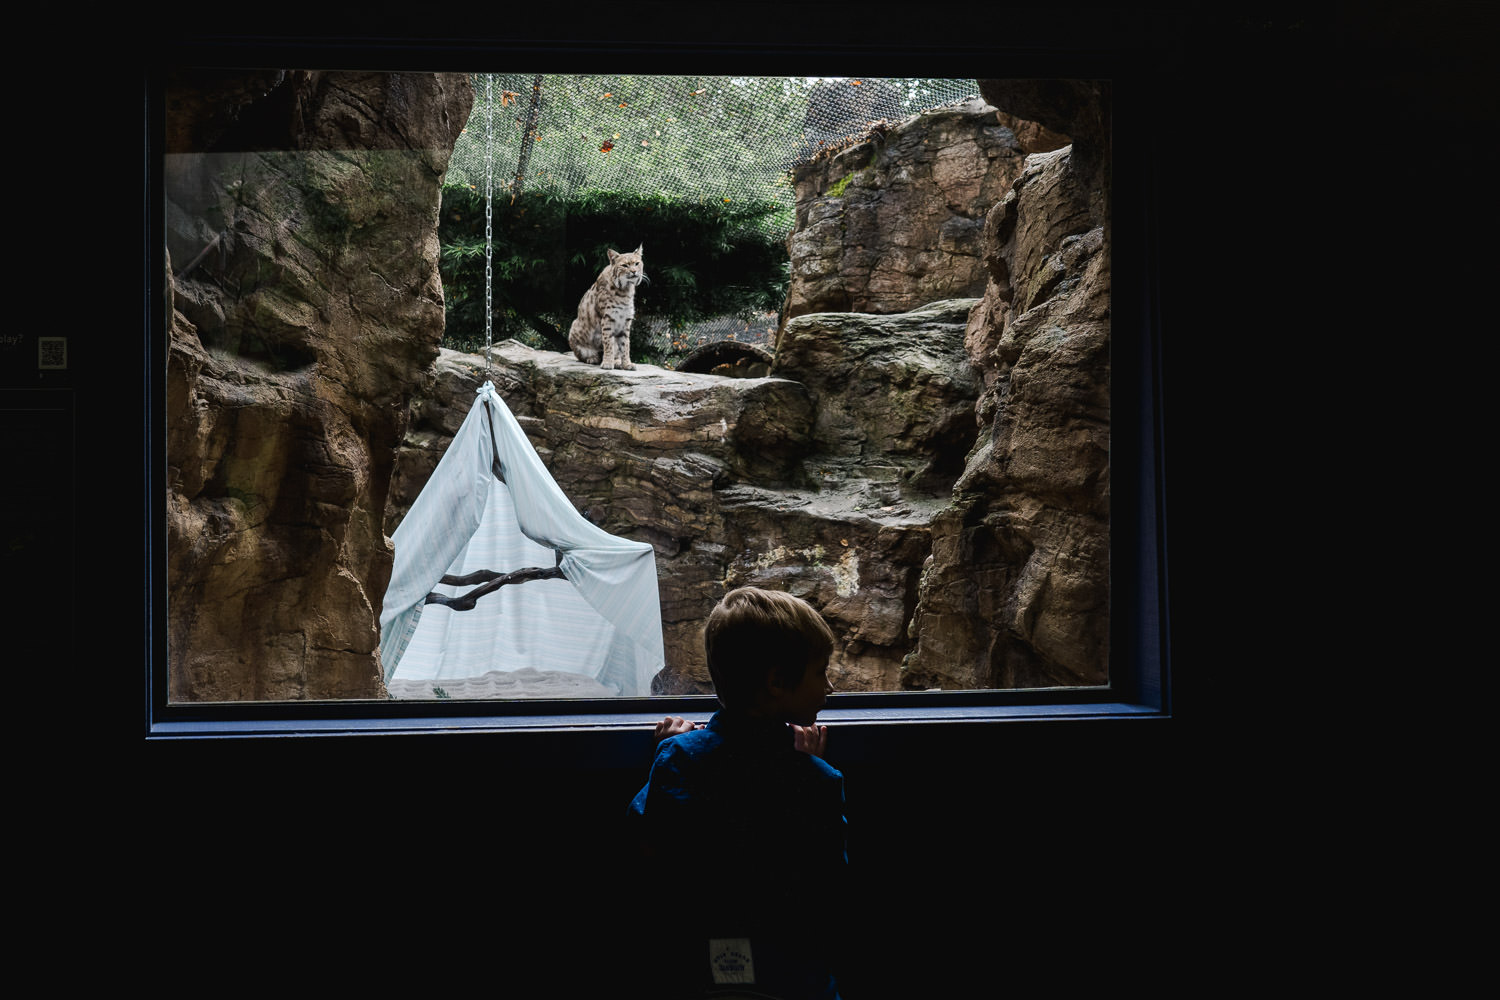 A little boy looks at a bobcat at the zoo.